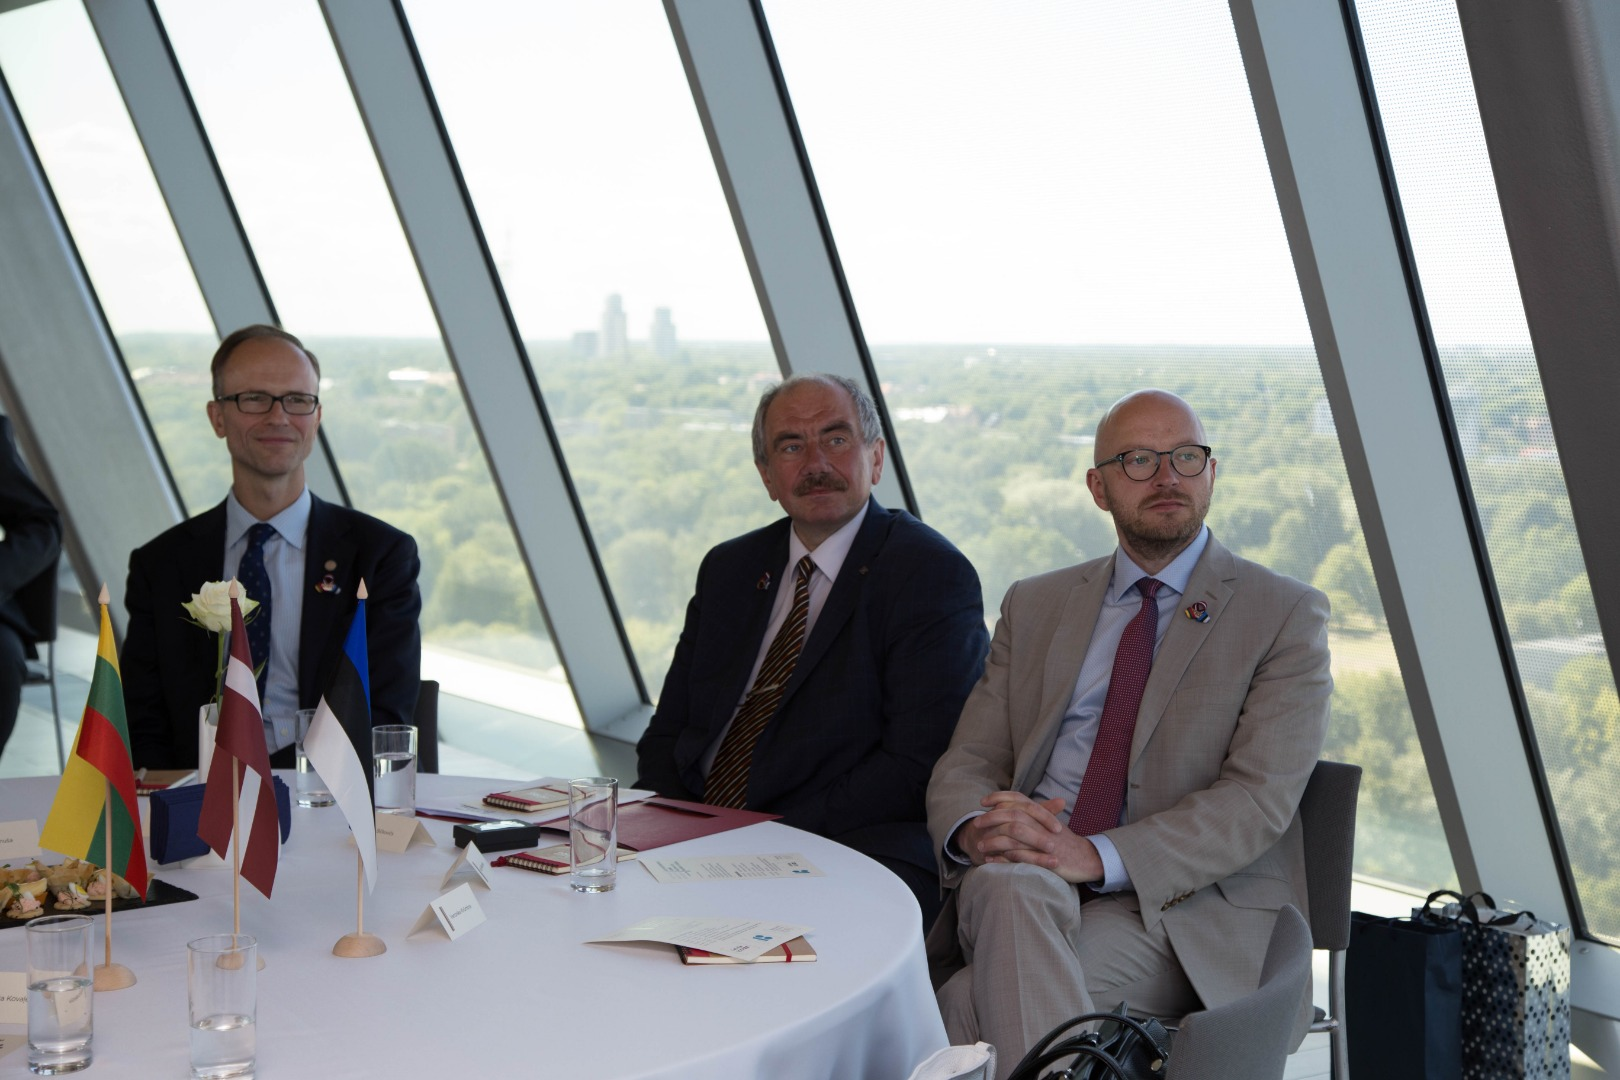 Rimvydas Norkus, President of the Supreme Court of Lithuania, Ivars Bickovics, Chief Justice of the Supreme Court of Estonia, and Priit Pikamäe, Chief Justice of the Supreme Court of Estonia